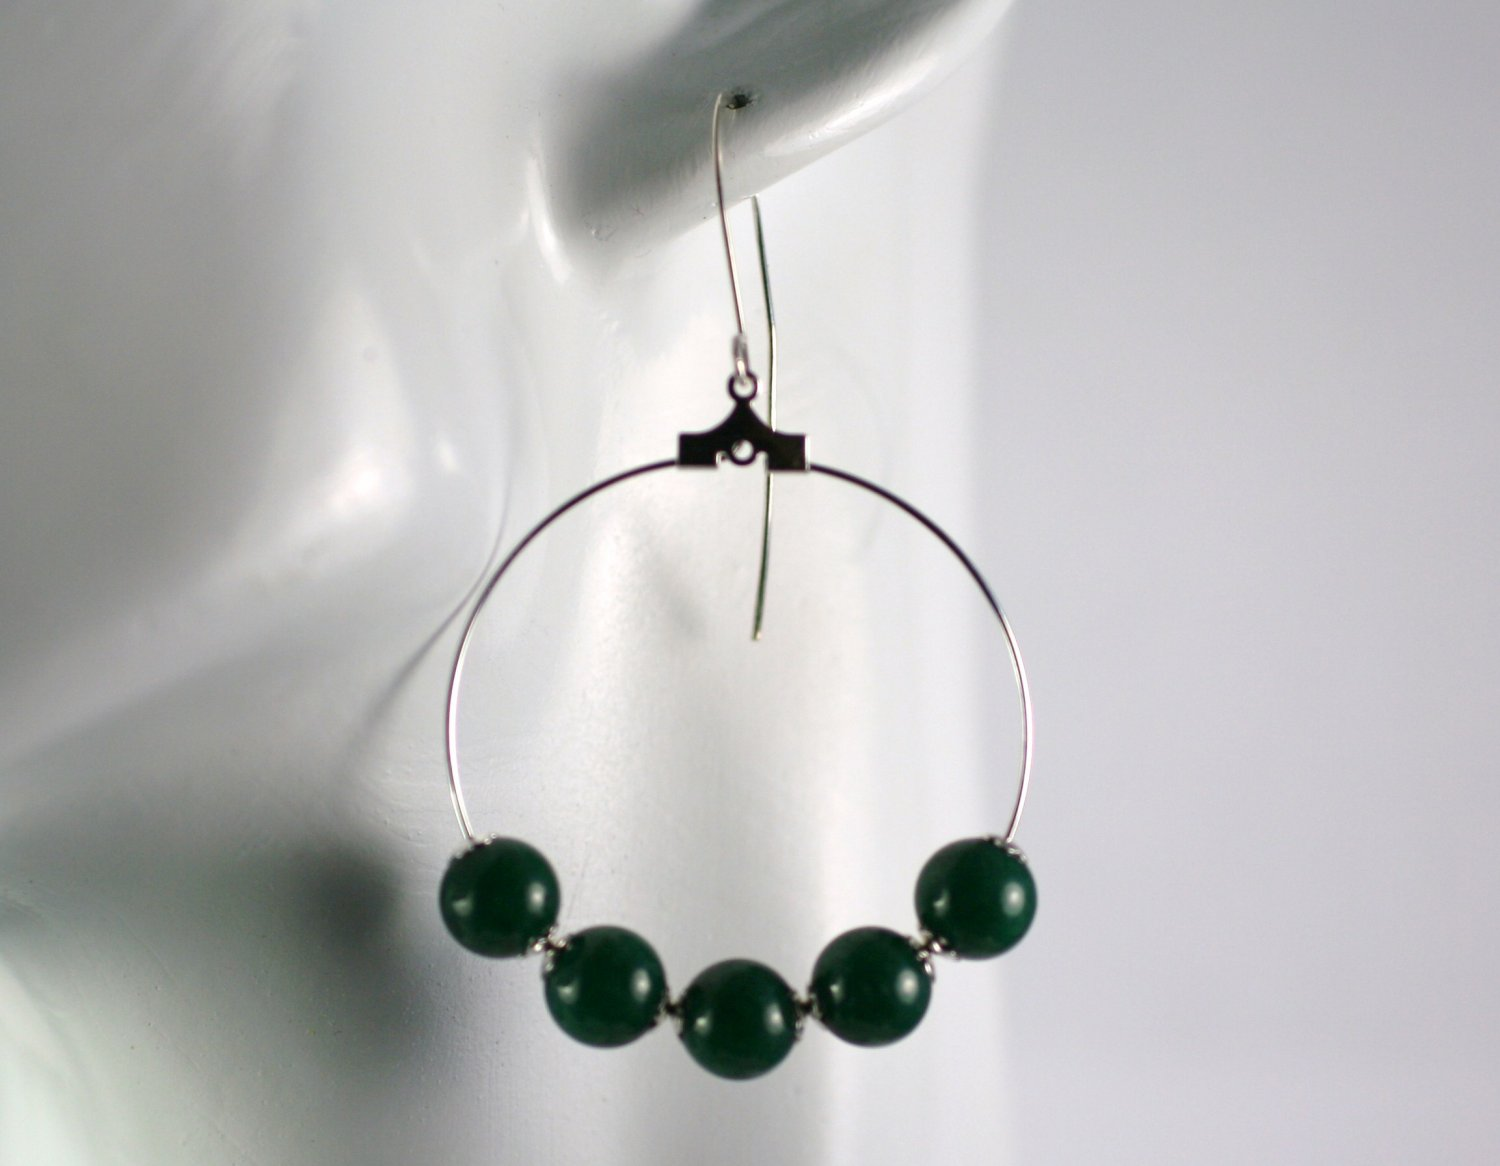 Silver Hoop Earrings with Green Mountain Jade Beads 1.5 in.  Handcrafted Jewelry